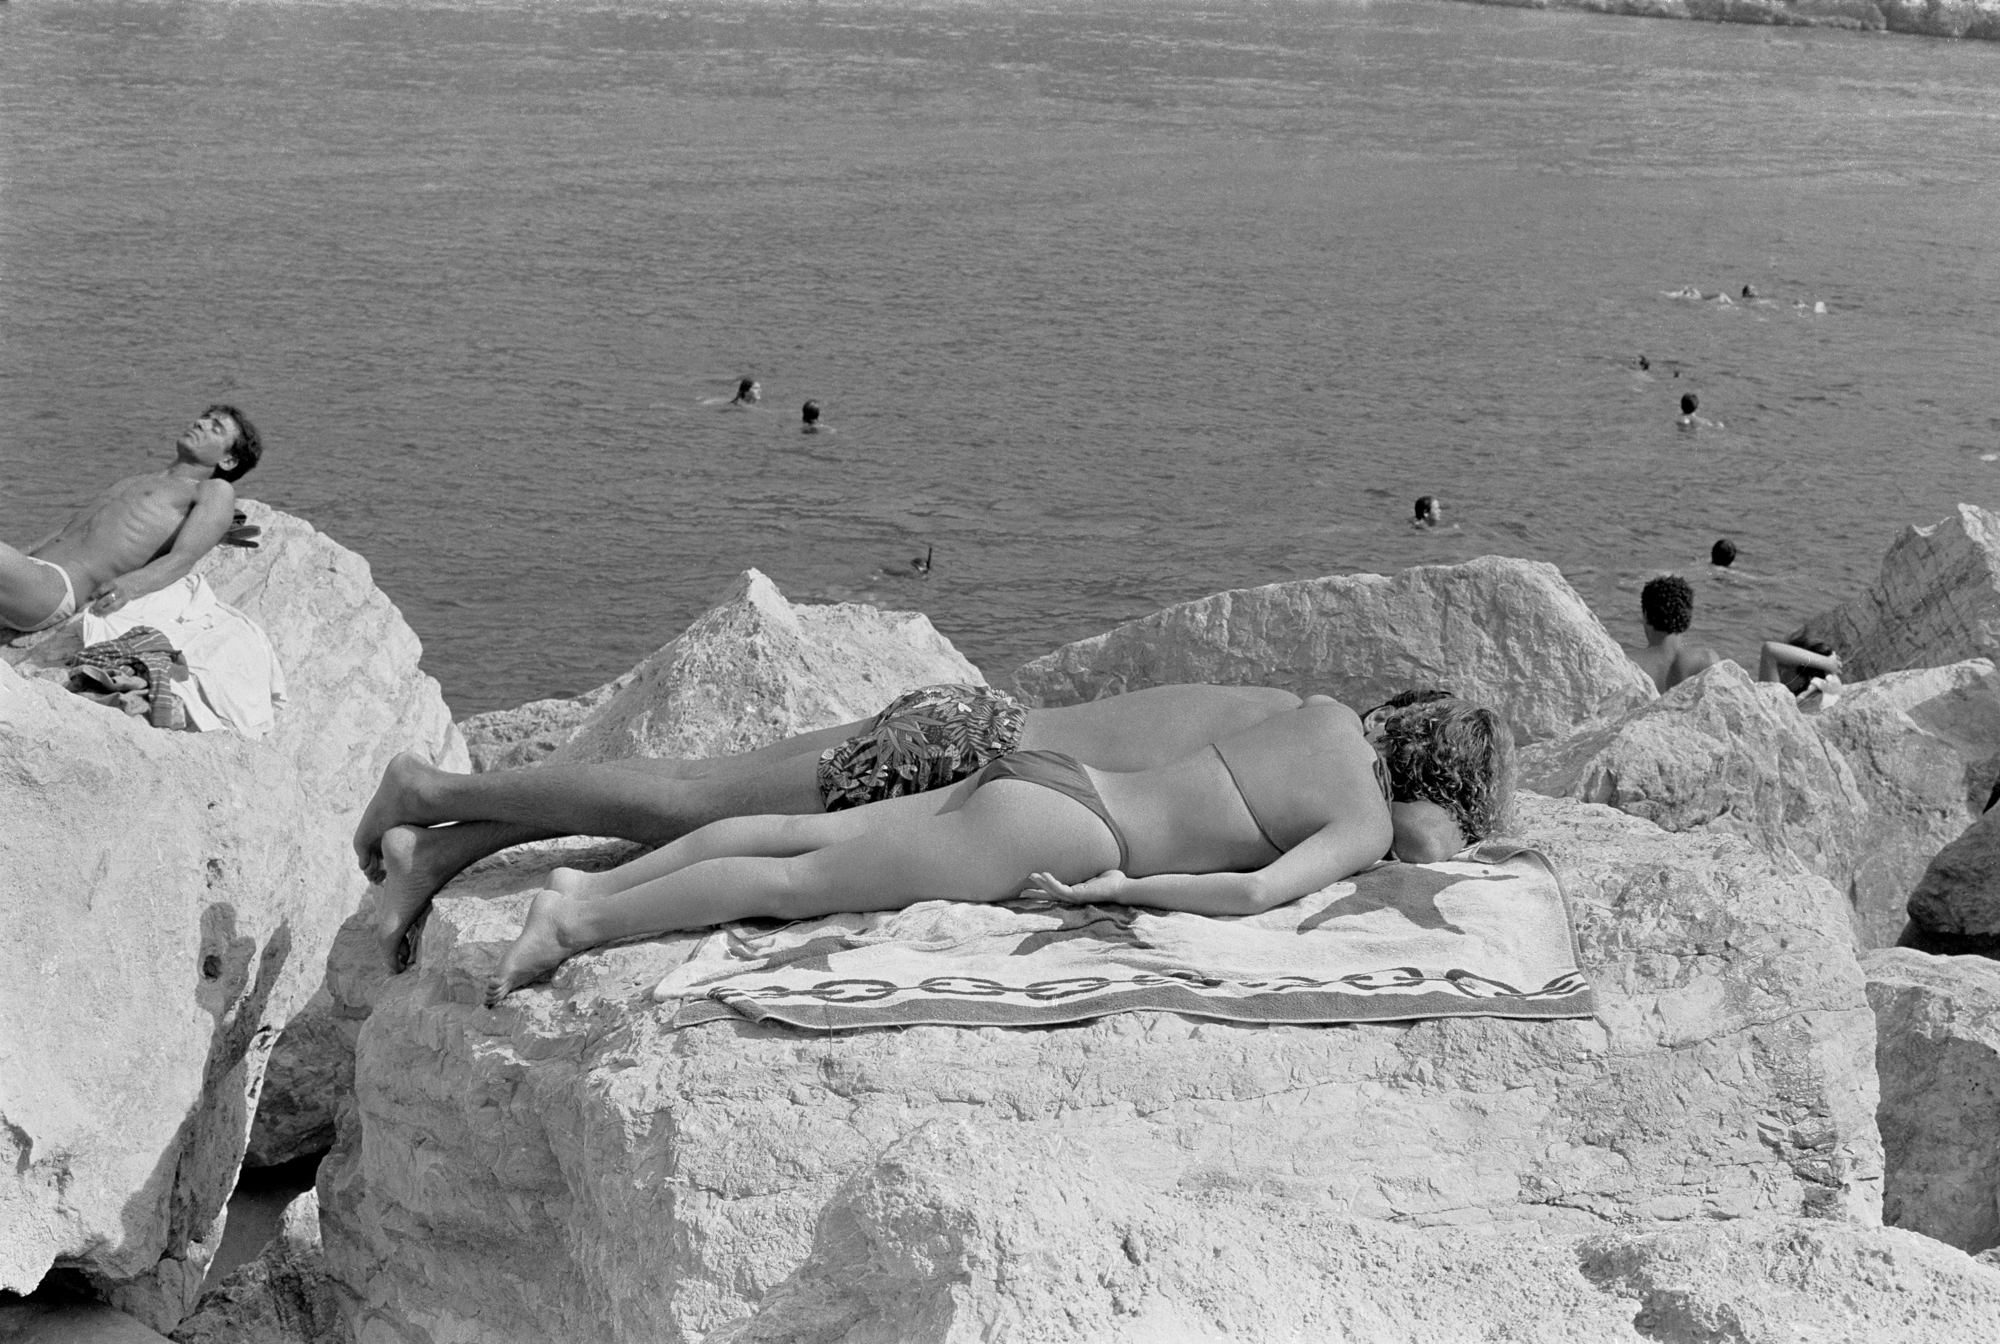 TRAVELS IN ITALY - Sunbathers - Tellaro - early 1980's